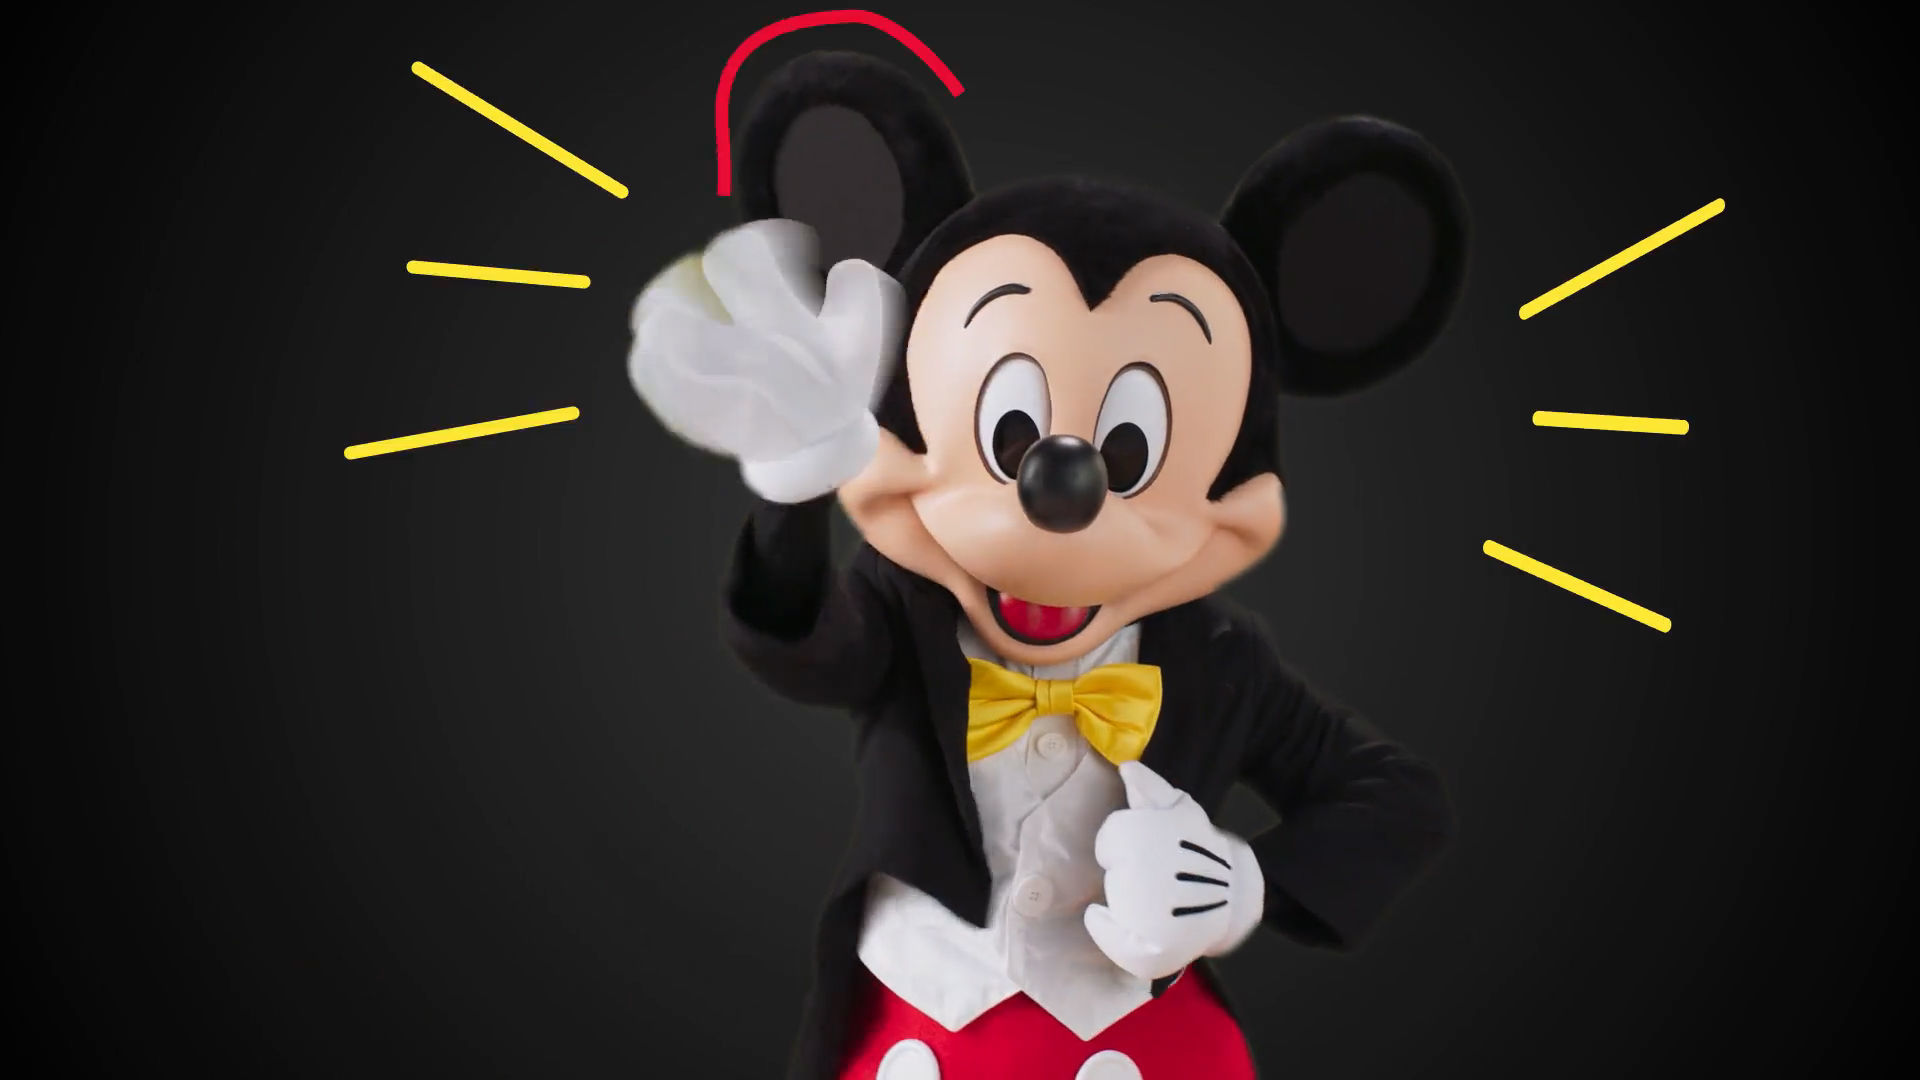 Mickey Share A Smile Campaign